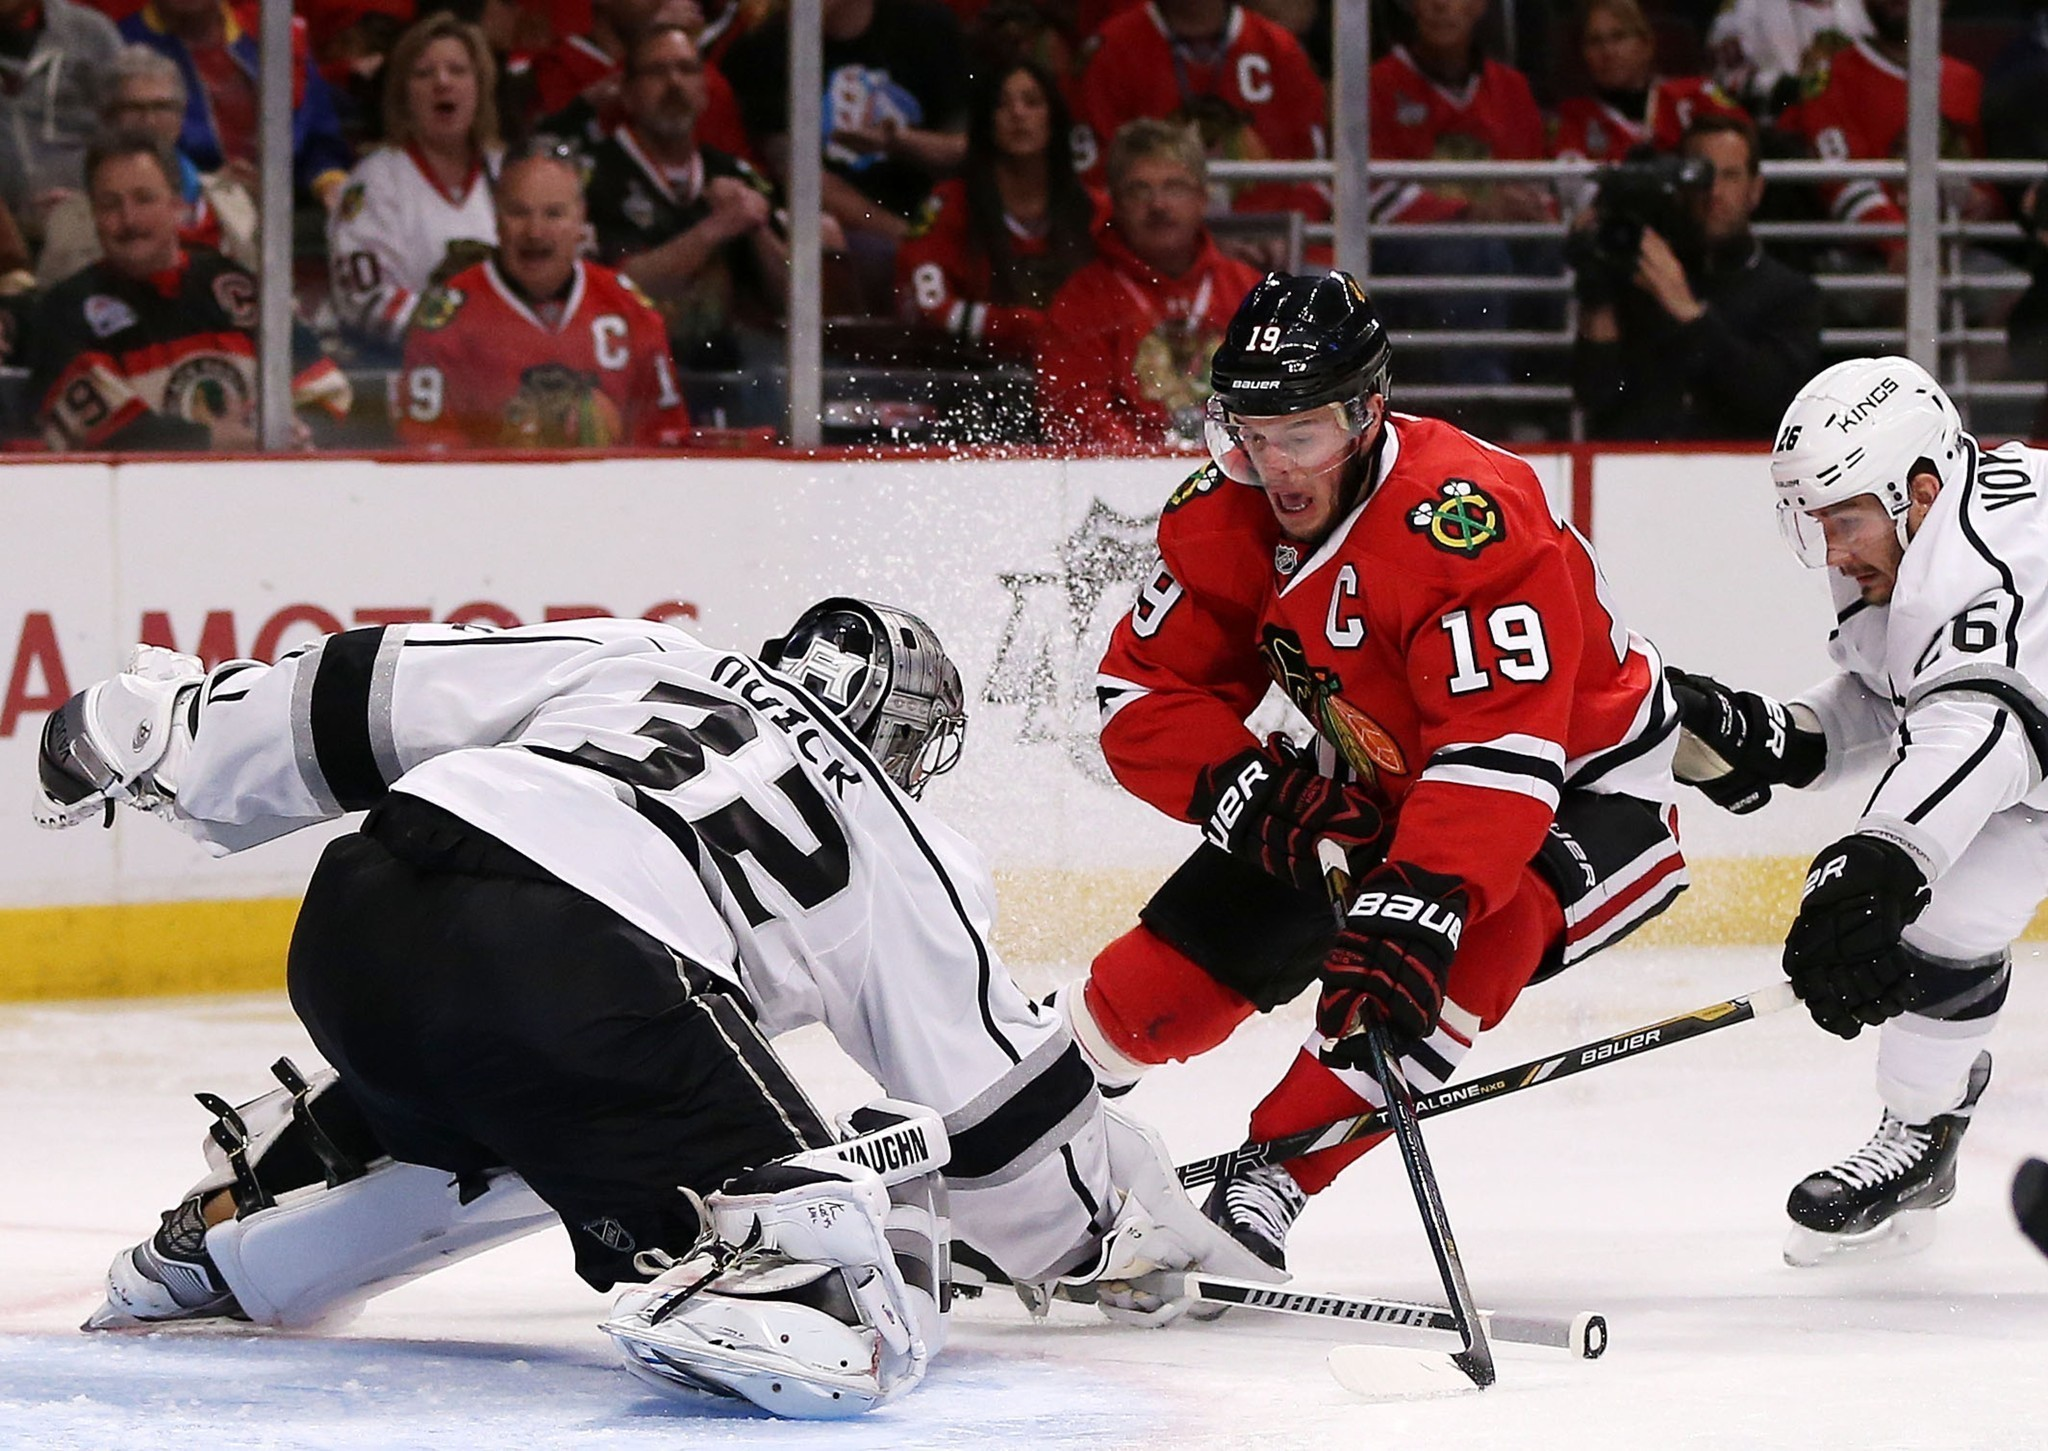 Blackhawks-Kings Could Turn On Battle Of Top Lines